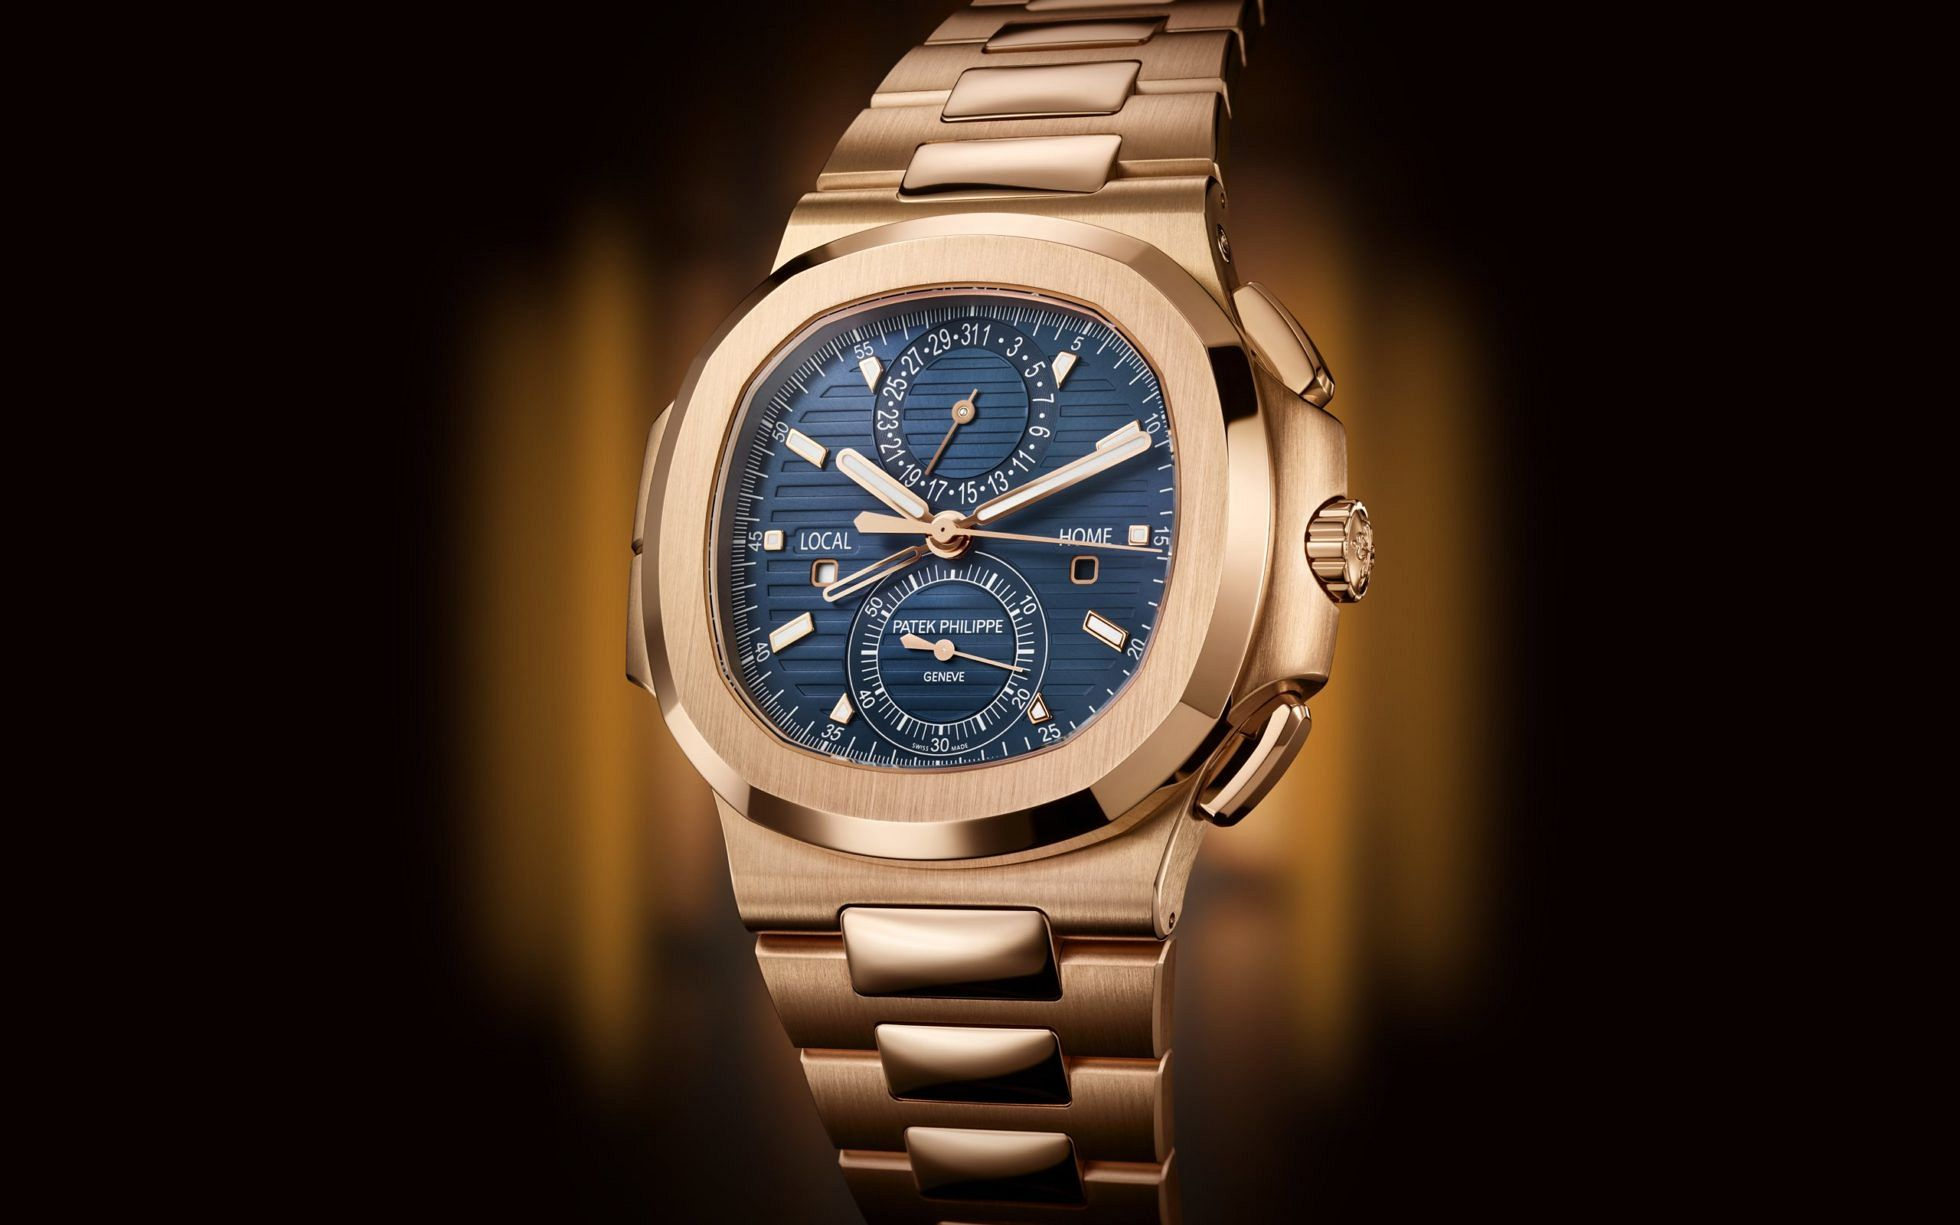 Unscrupulous retailers, unattainable watches: An open letter of howling despair